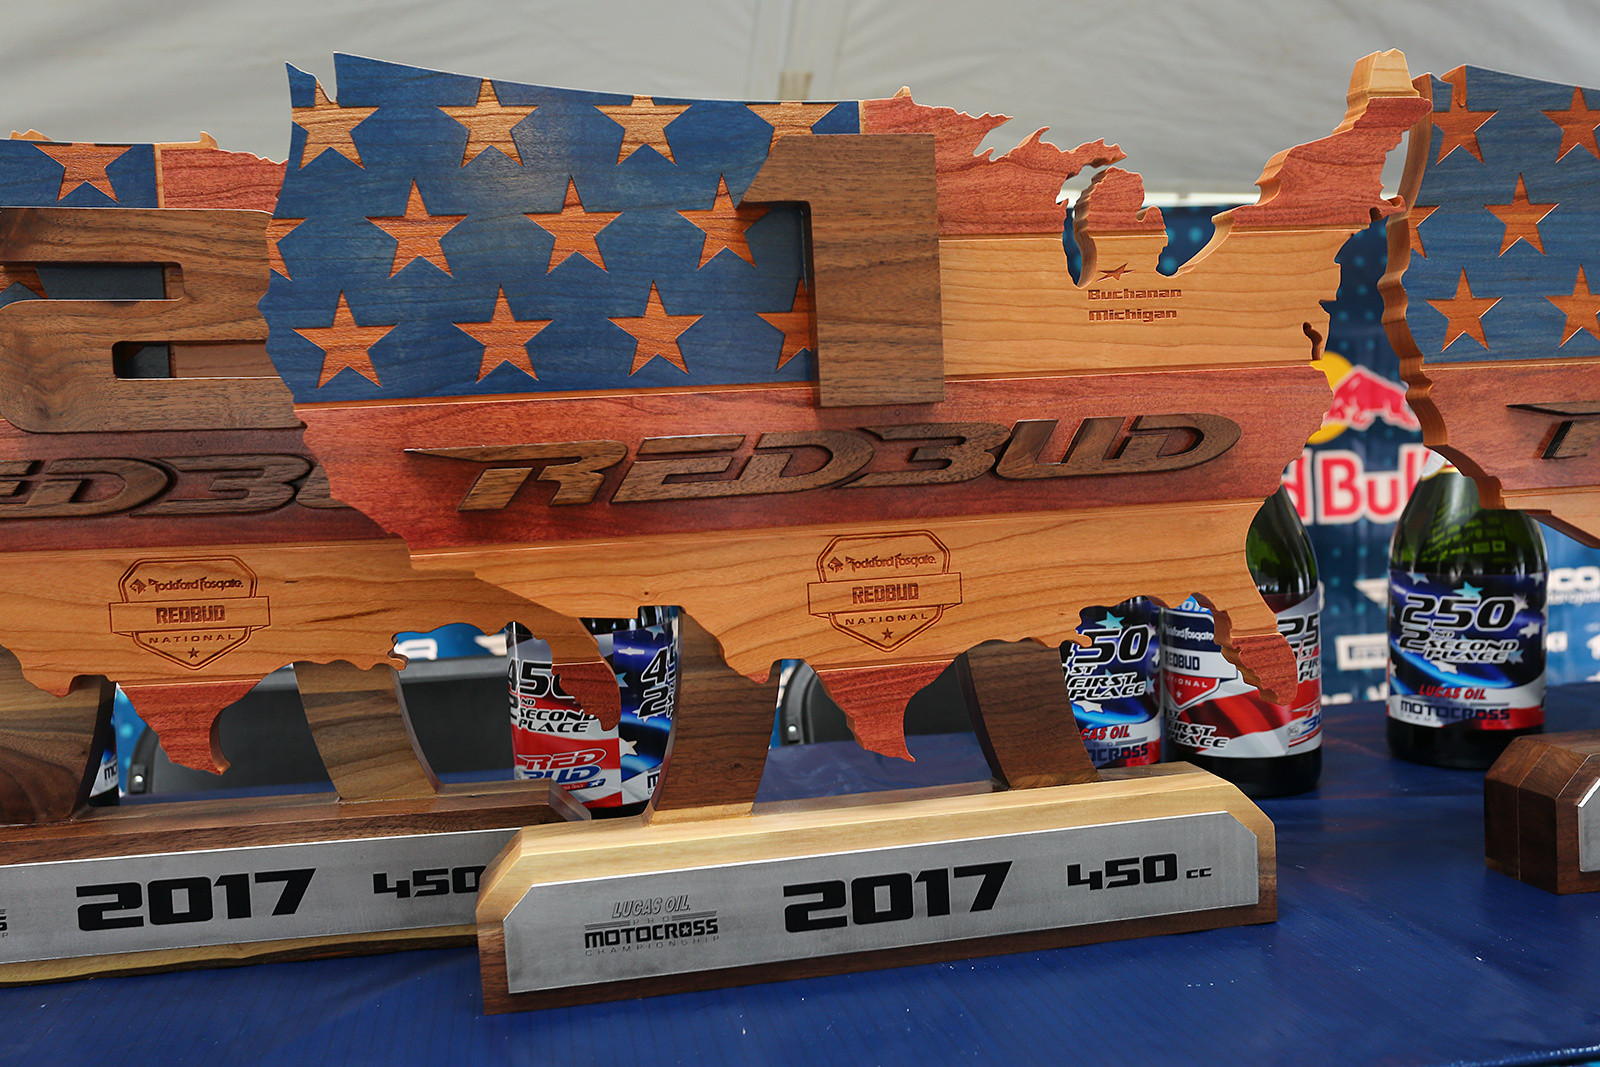 The trophies for the weekend were really cool. It's amazing the variety of awards that you'll see during the year.